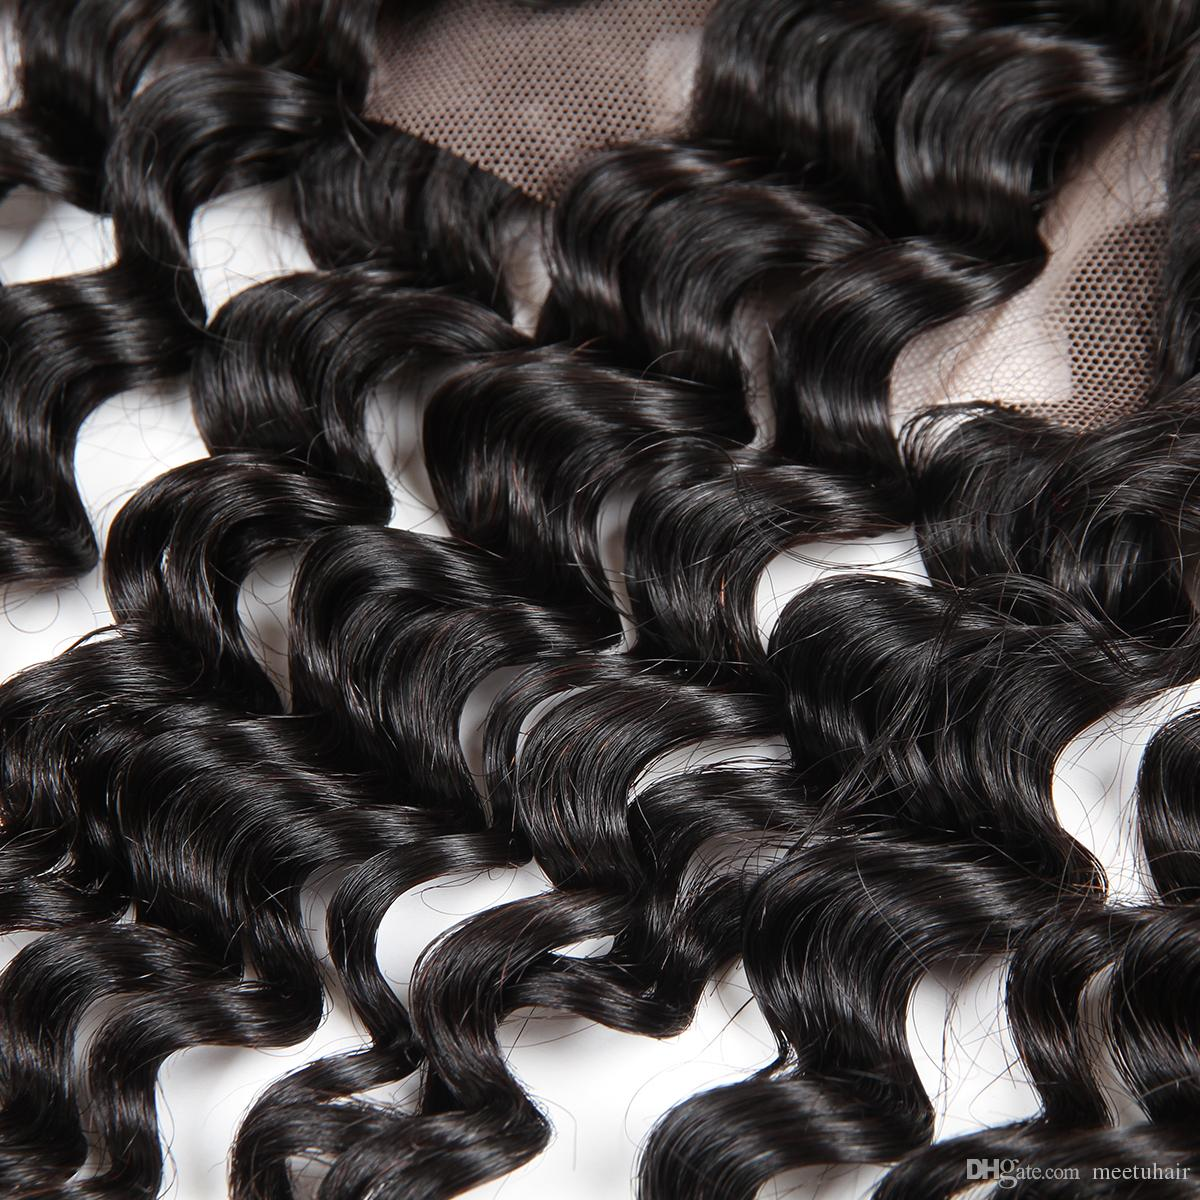 Cheap 8A 360 Lace Frontal Deep Wave Human Hair Pre Plucked for Black Women Brazilian Peruvian Malaysian Indian Hair 8-20inch